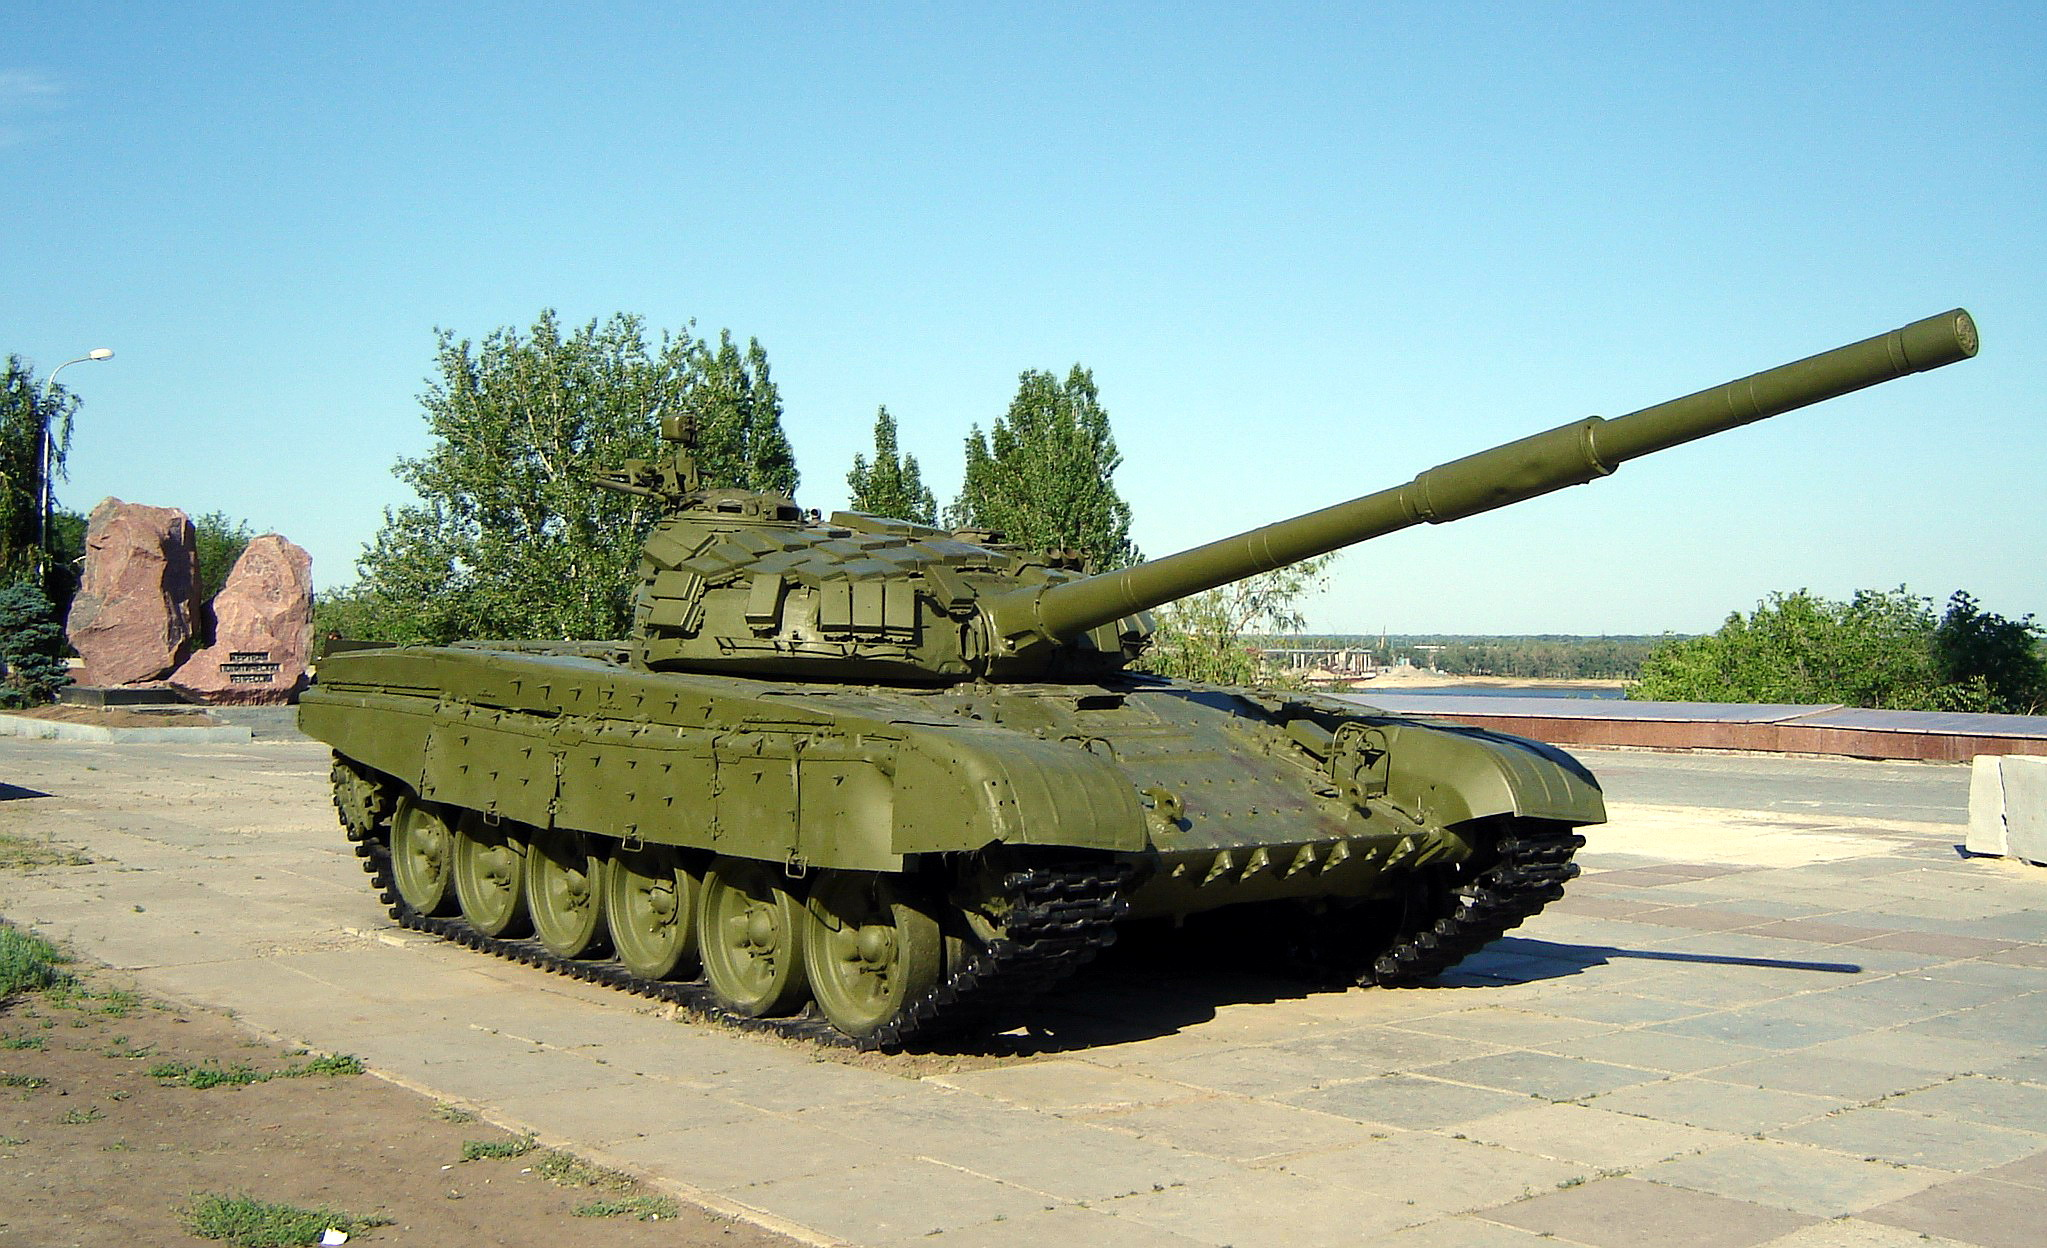 kontakt-1 era installed the way it was intended, at least some of the t-72avs can be seen with a different